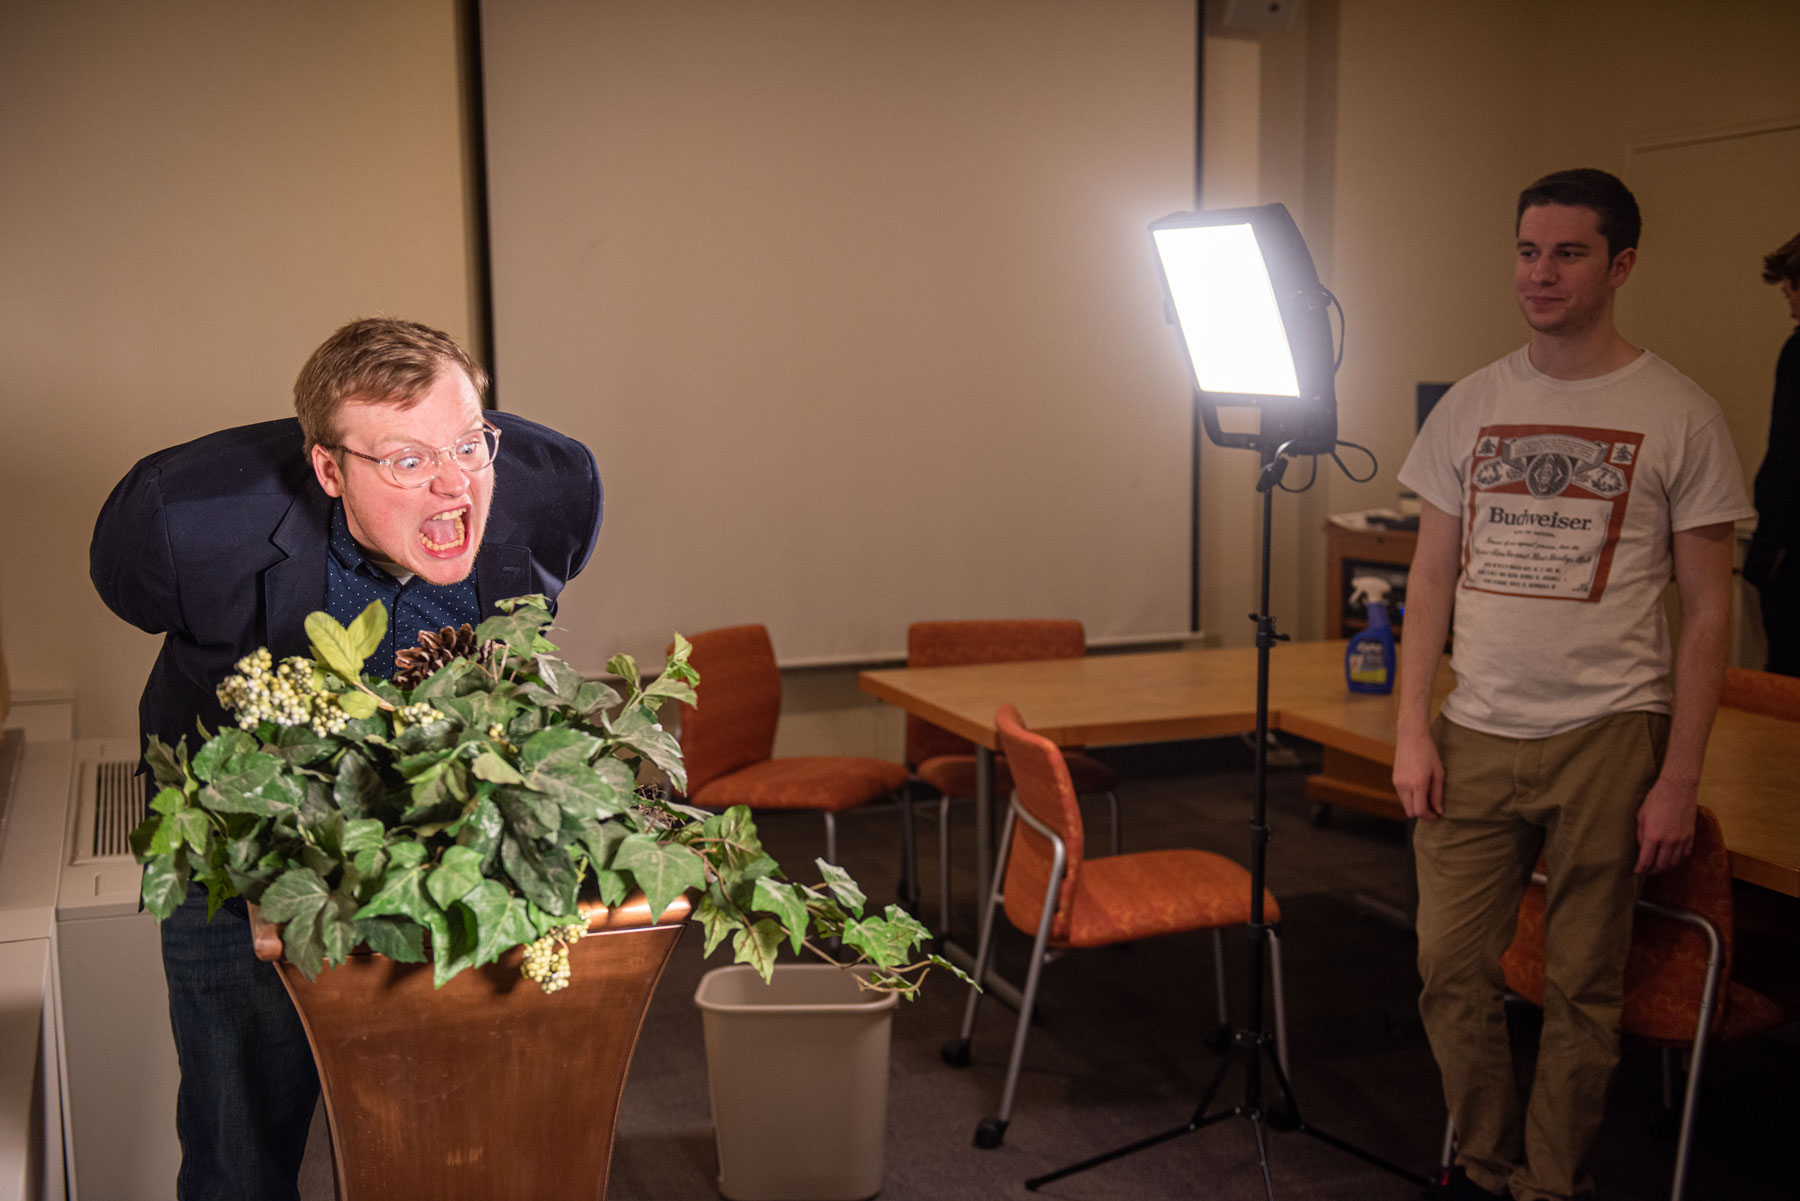 A man illuminated by video lighting shouting at a plant